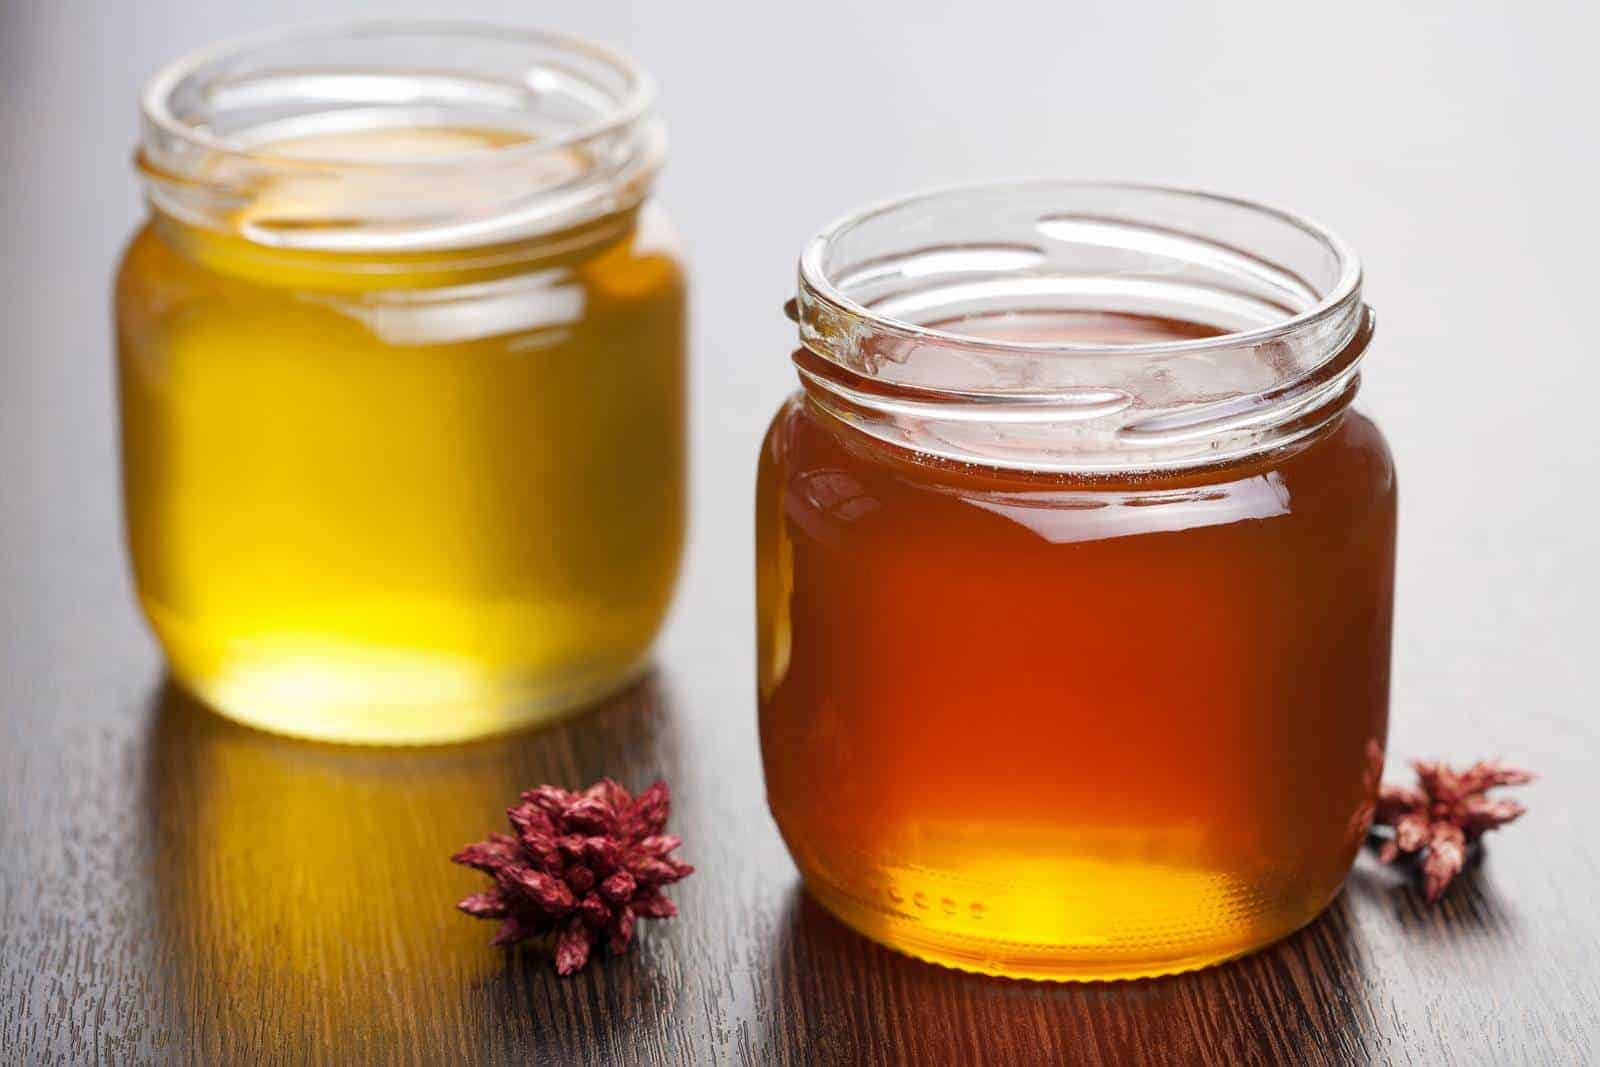 Light vs dark honey. What's the difference?